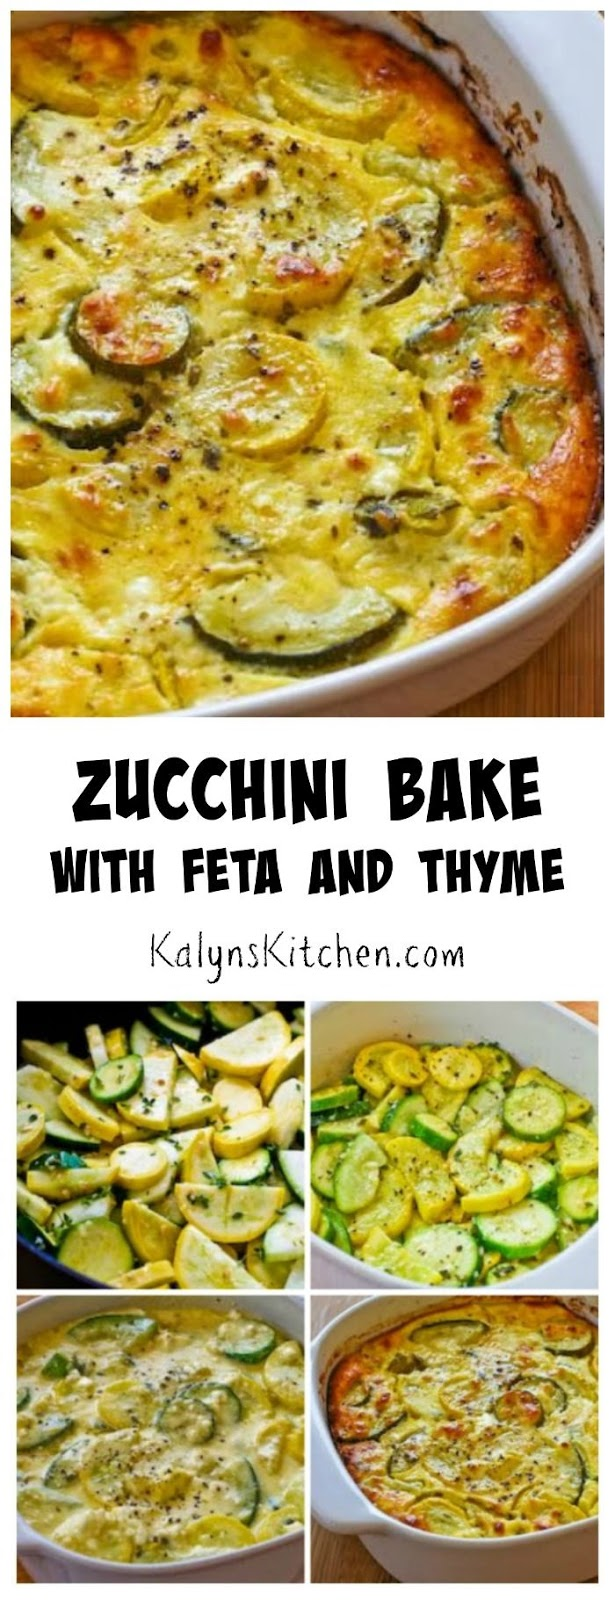 Recipe for Zucchini Bake with Feta and Thyme [from KalynsKitchen.com]